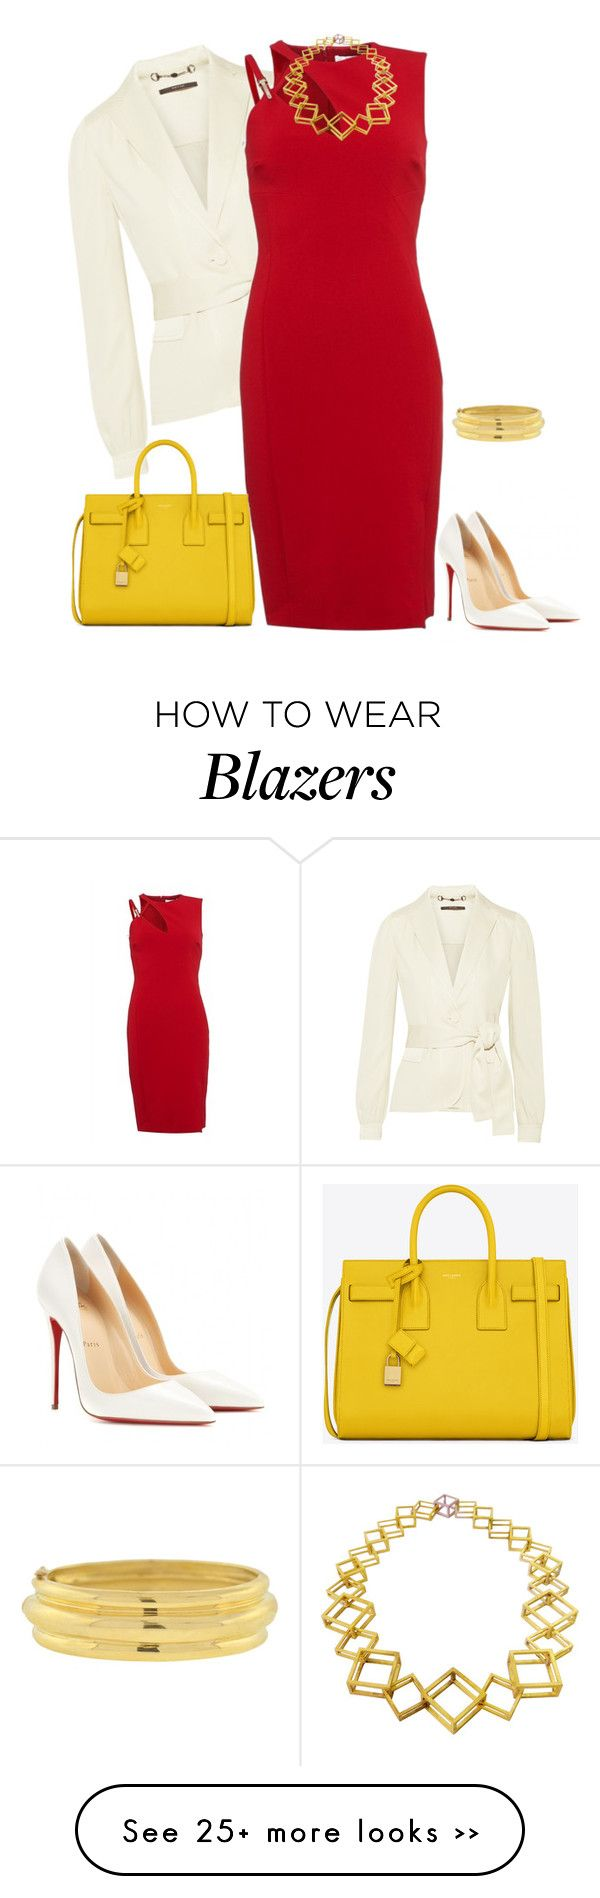 """""""outfit 2268"""" by natalyag on Polyvore featuring Gucci, Christian Louboutin, Versace, Stephanie Bates and Yves Saint Laurent"""